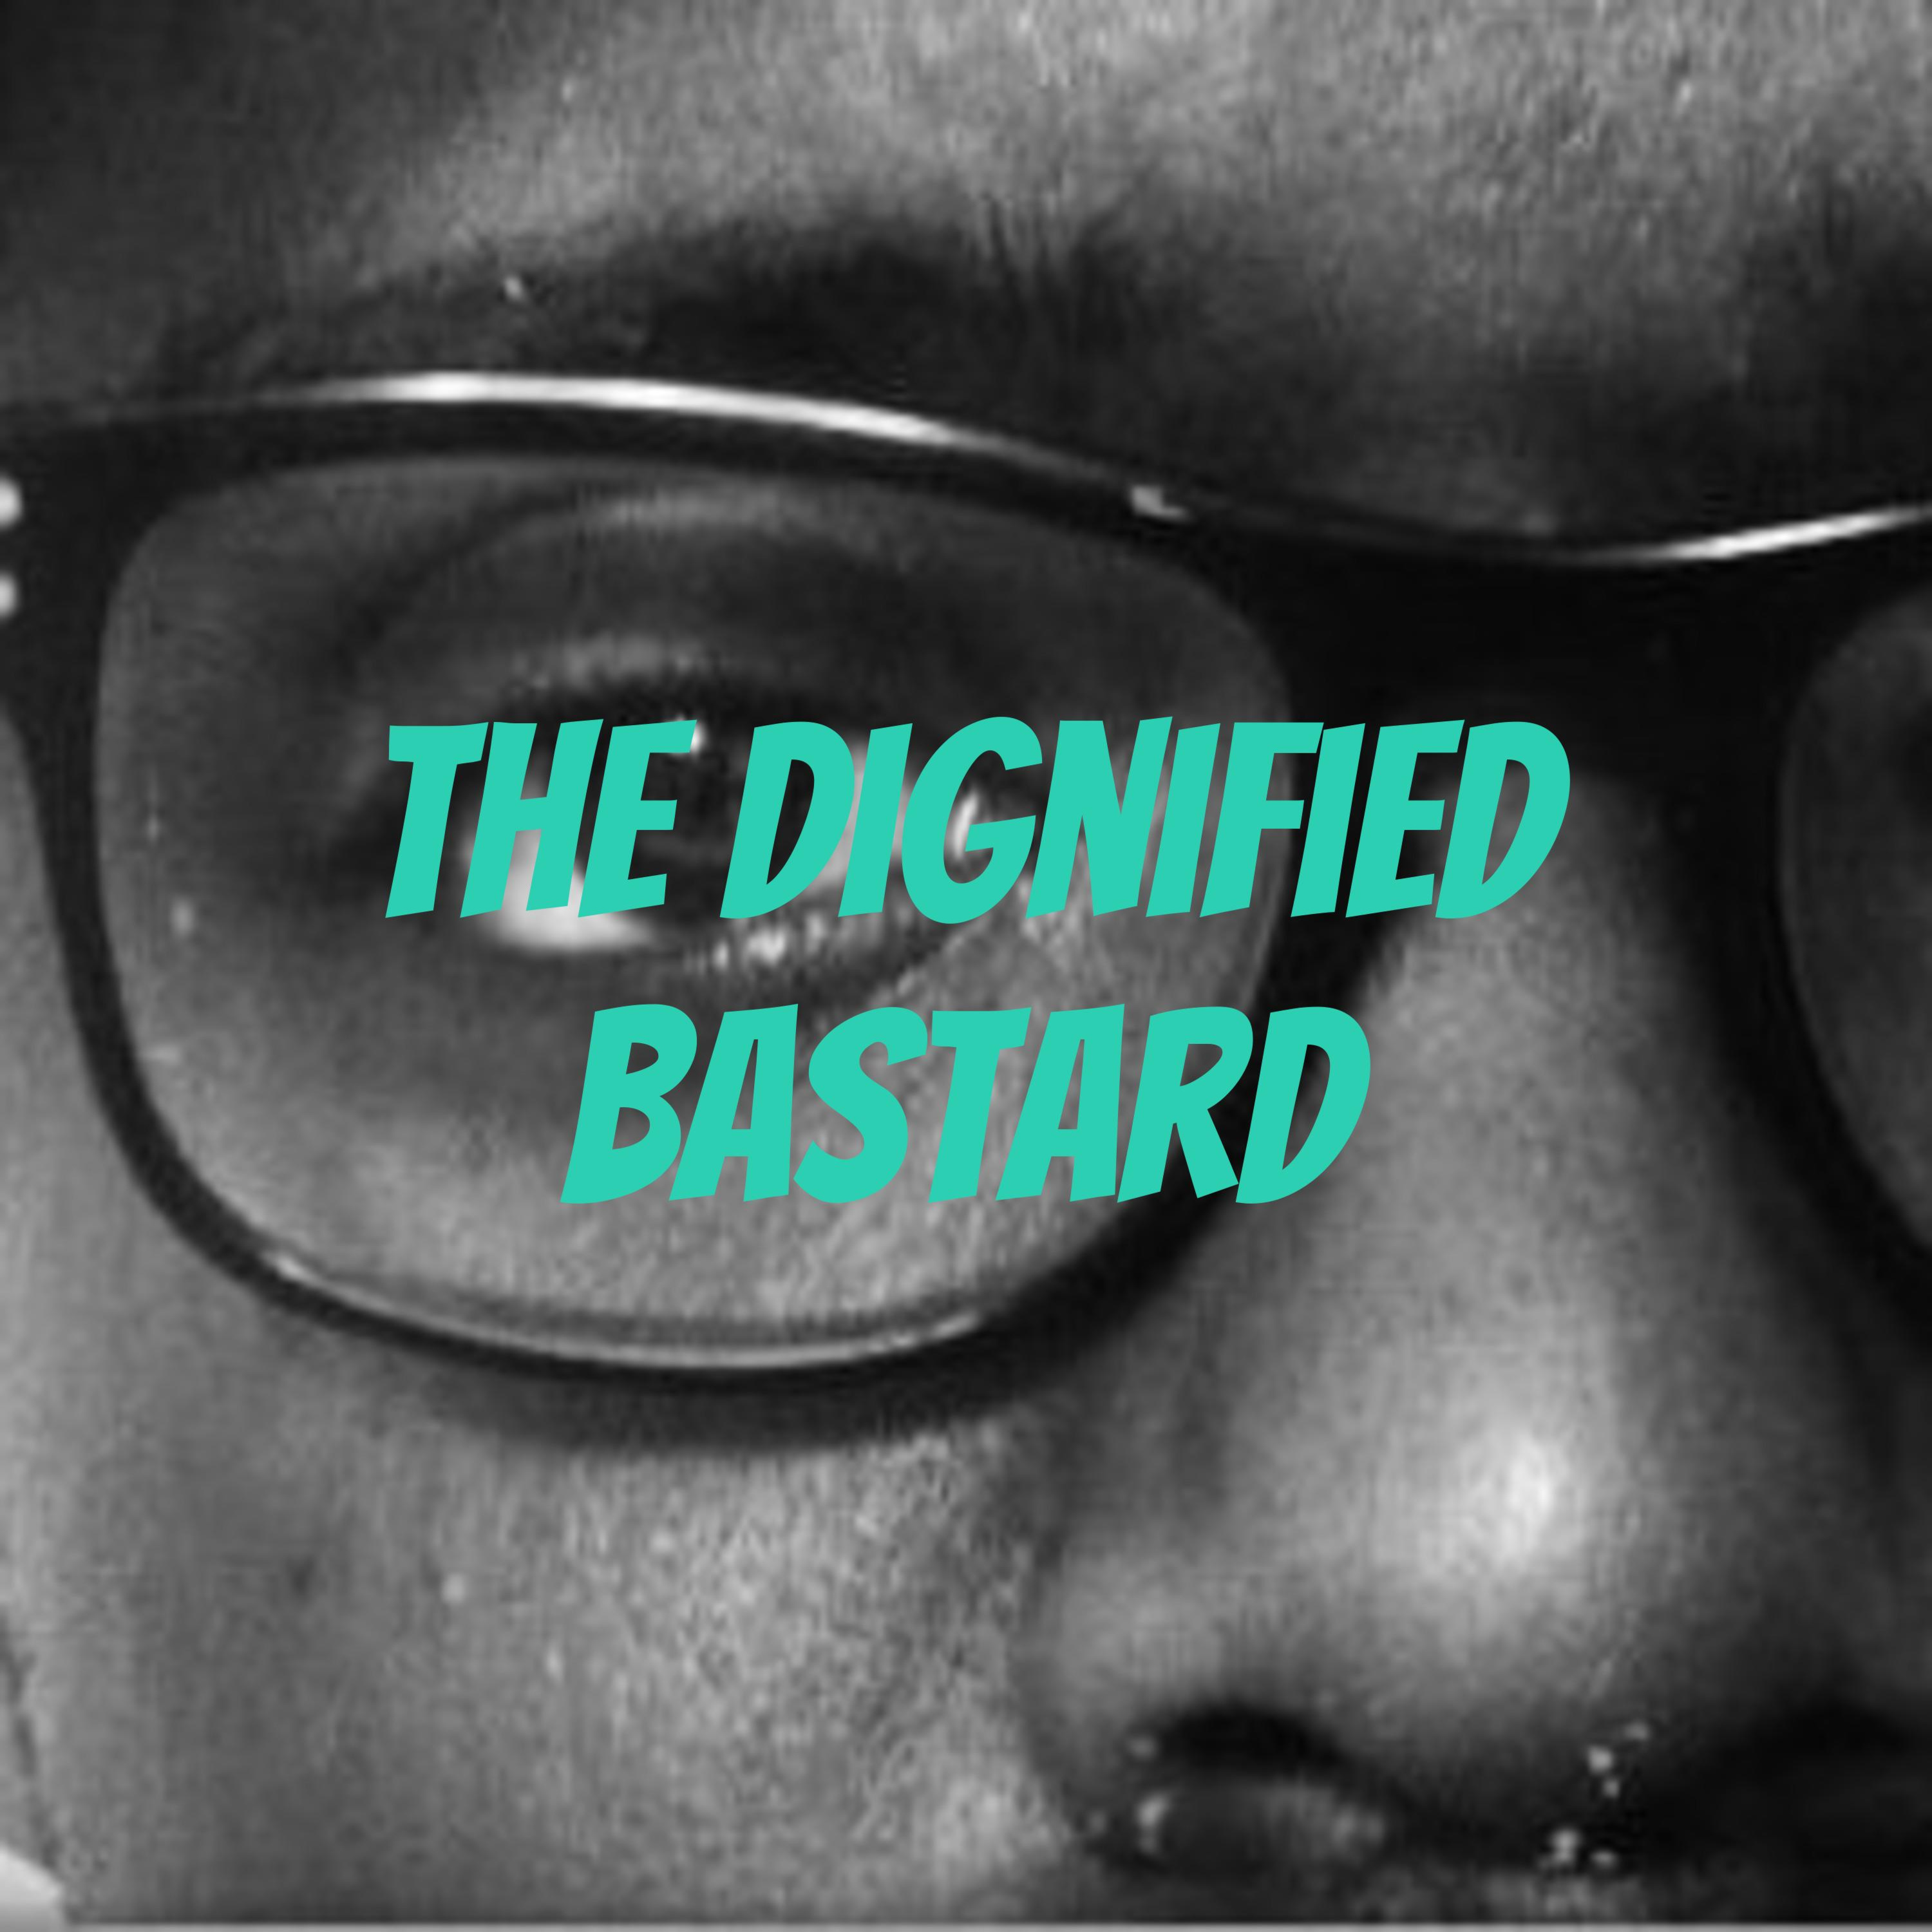 The Dignified Bastard